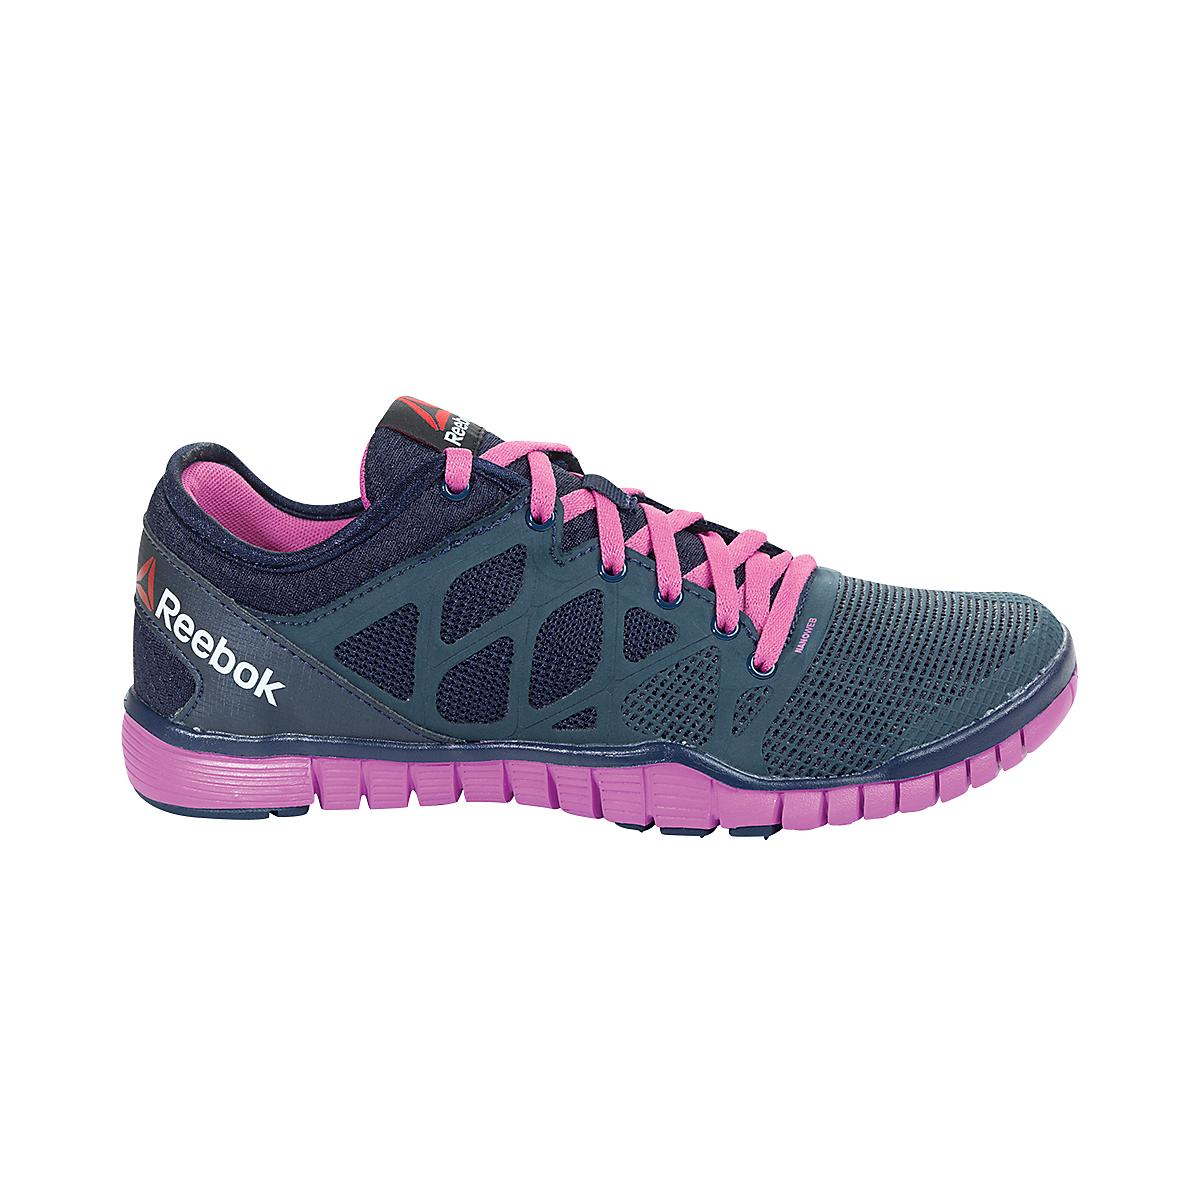 Black Trail Running Shoes Womens Reebock